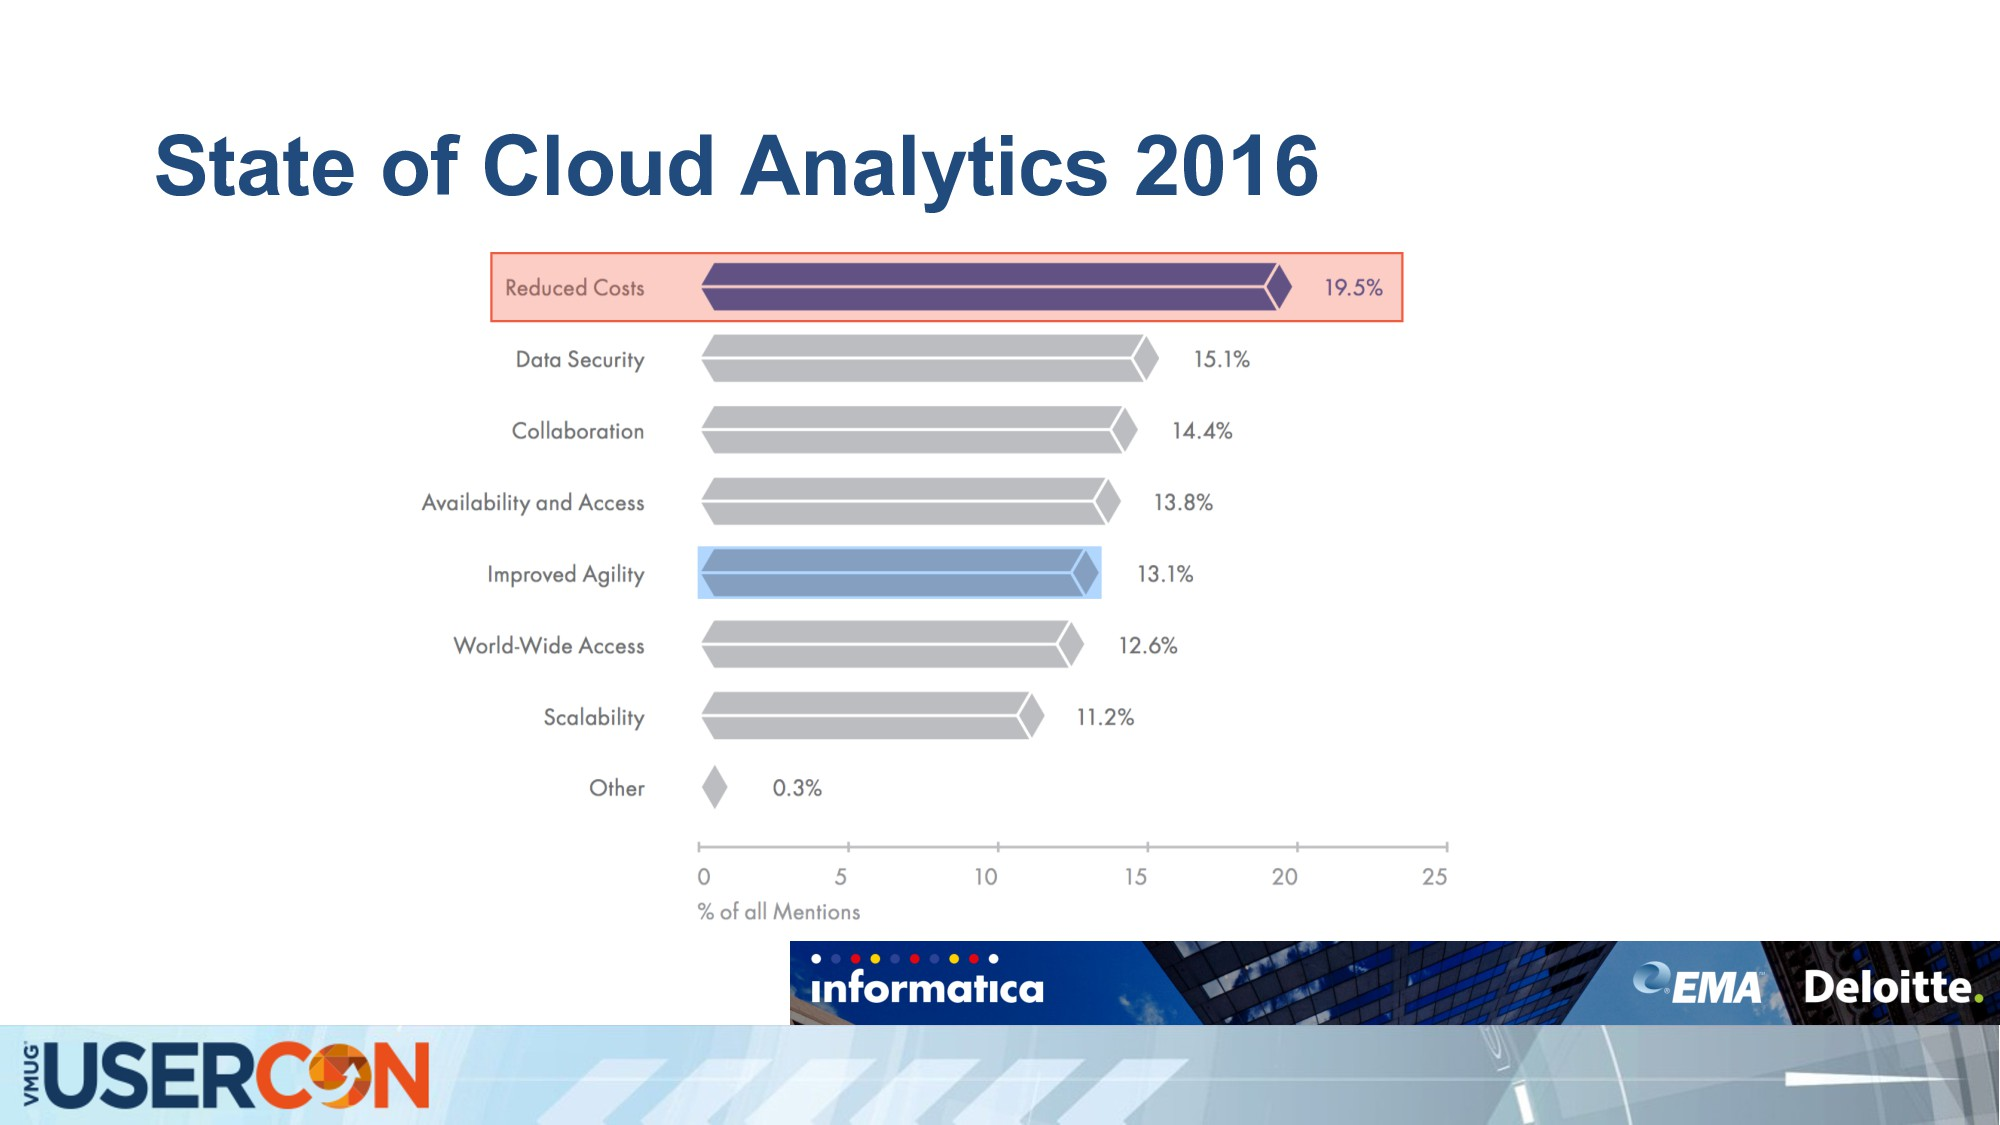 State of Cloud Analytics 2016